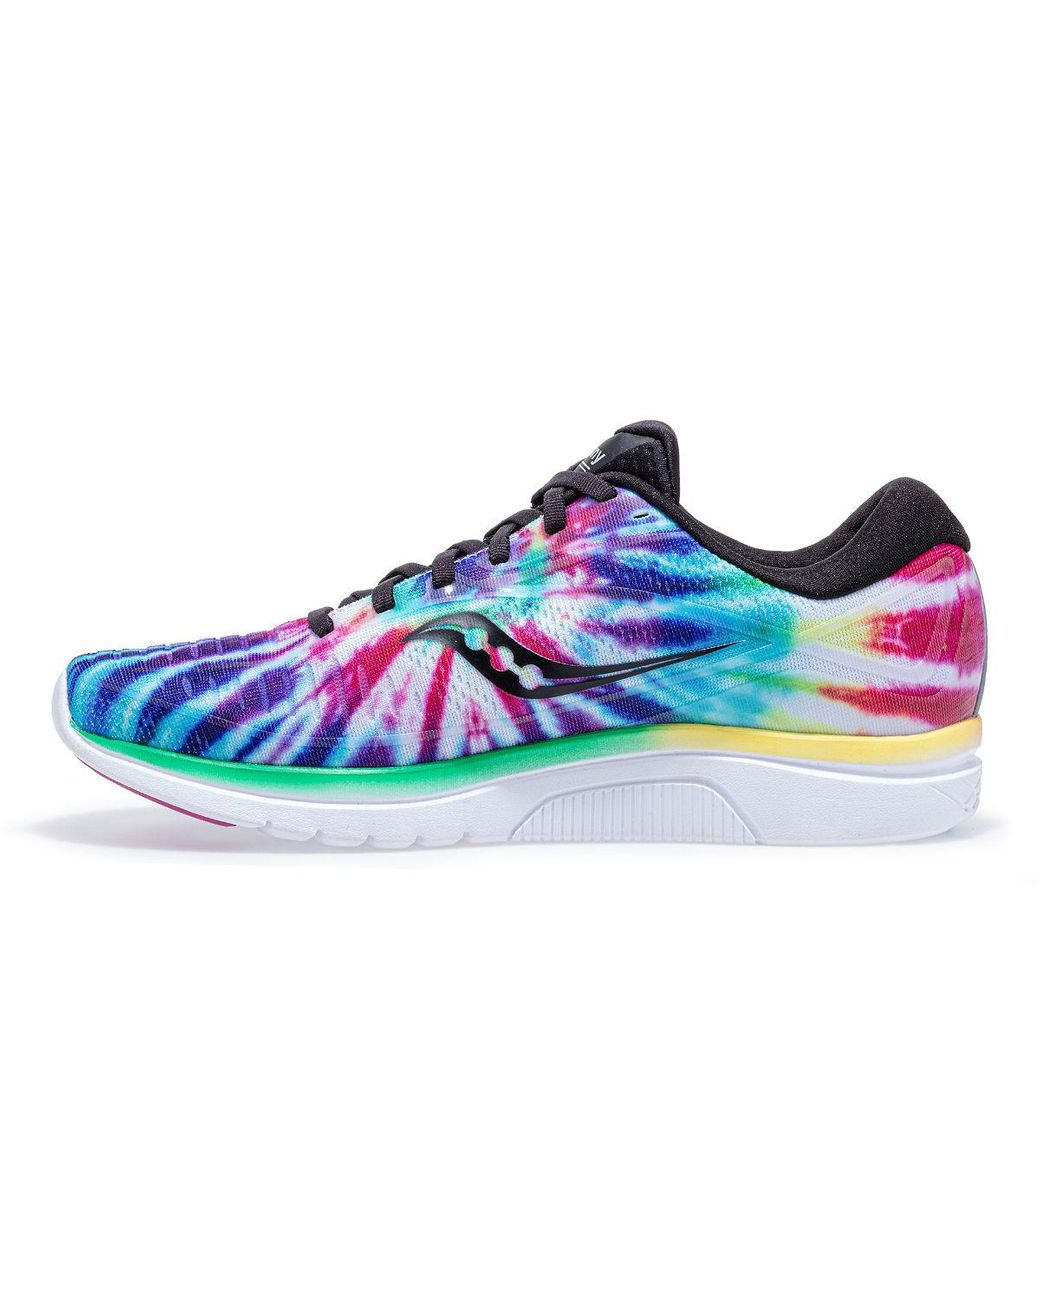 Saucony Kinvara 10 Tie dye Blue Saucony Sneakers from Lyst | People